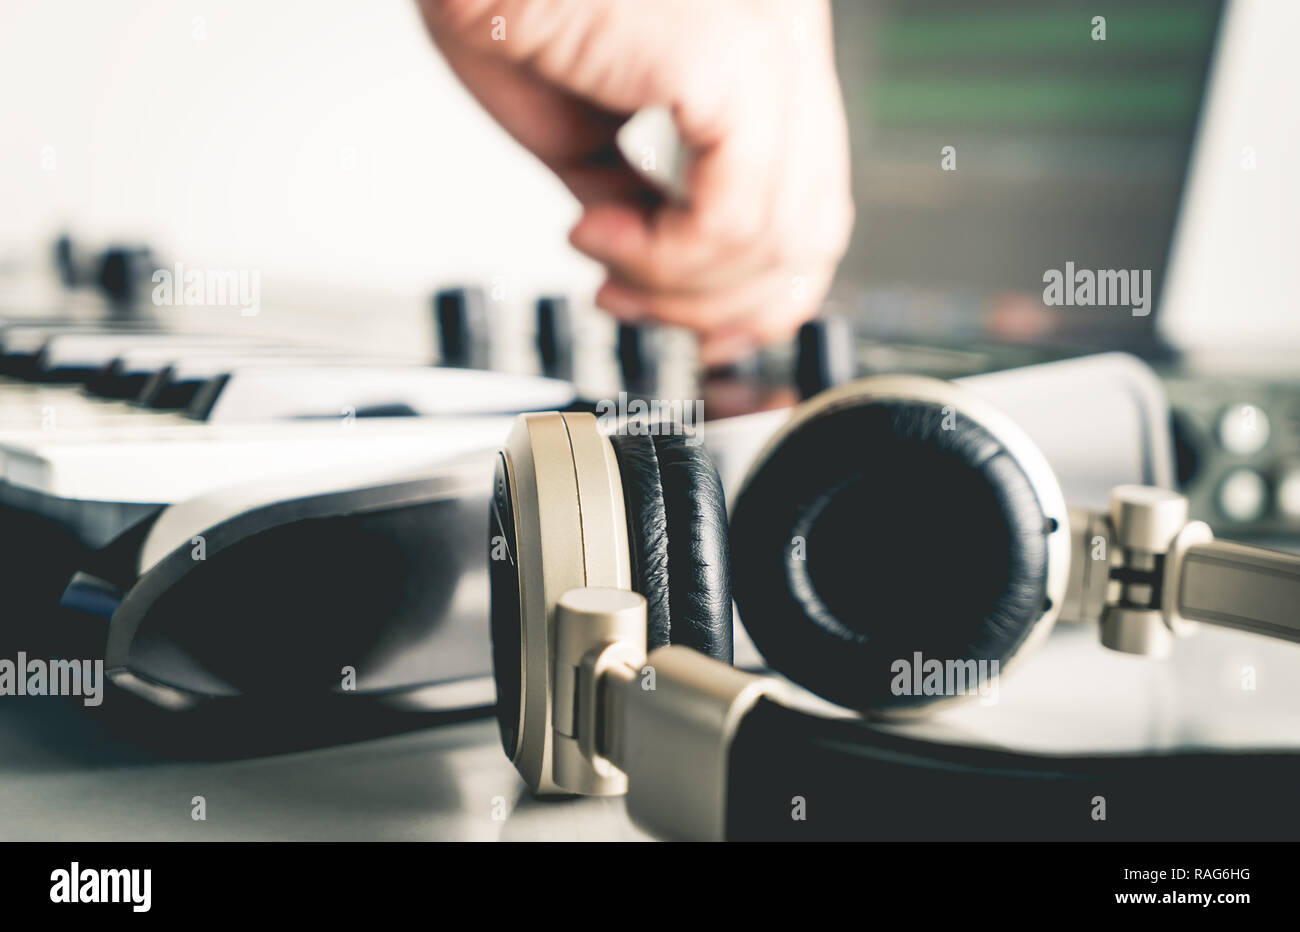 Musician is mixing and adjusting track on Portable Computer Music Studio home set up - Stock Image